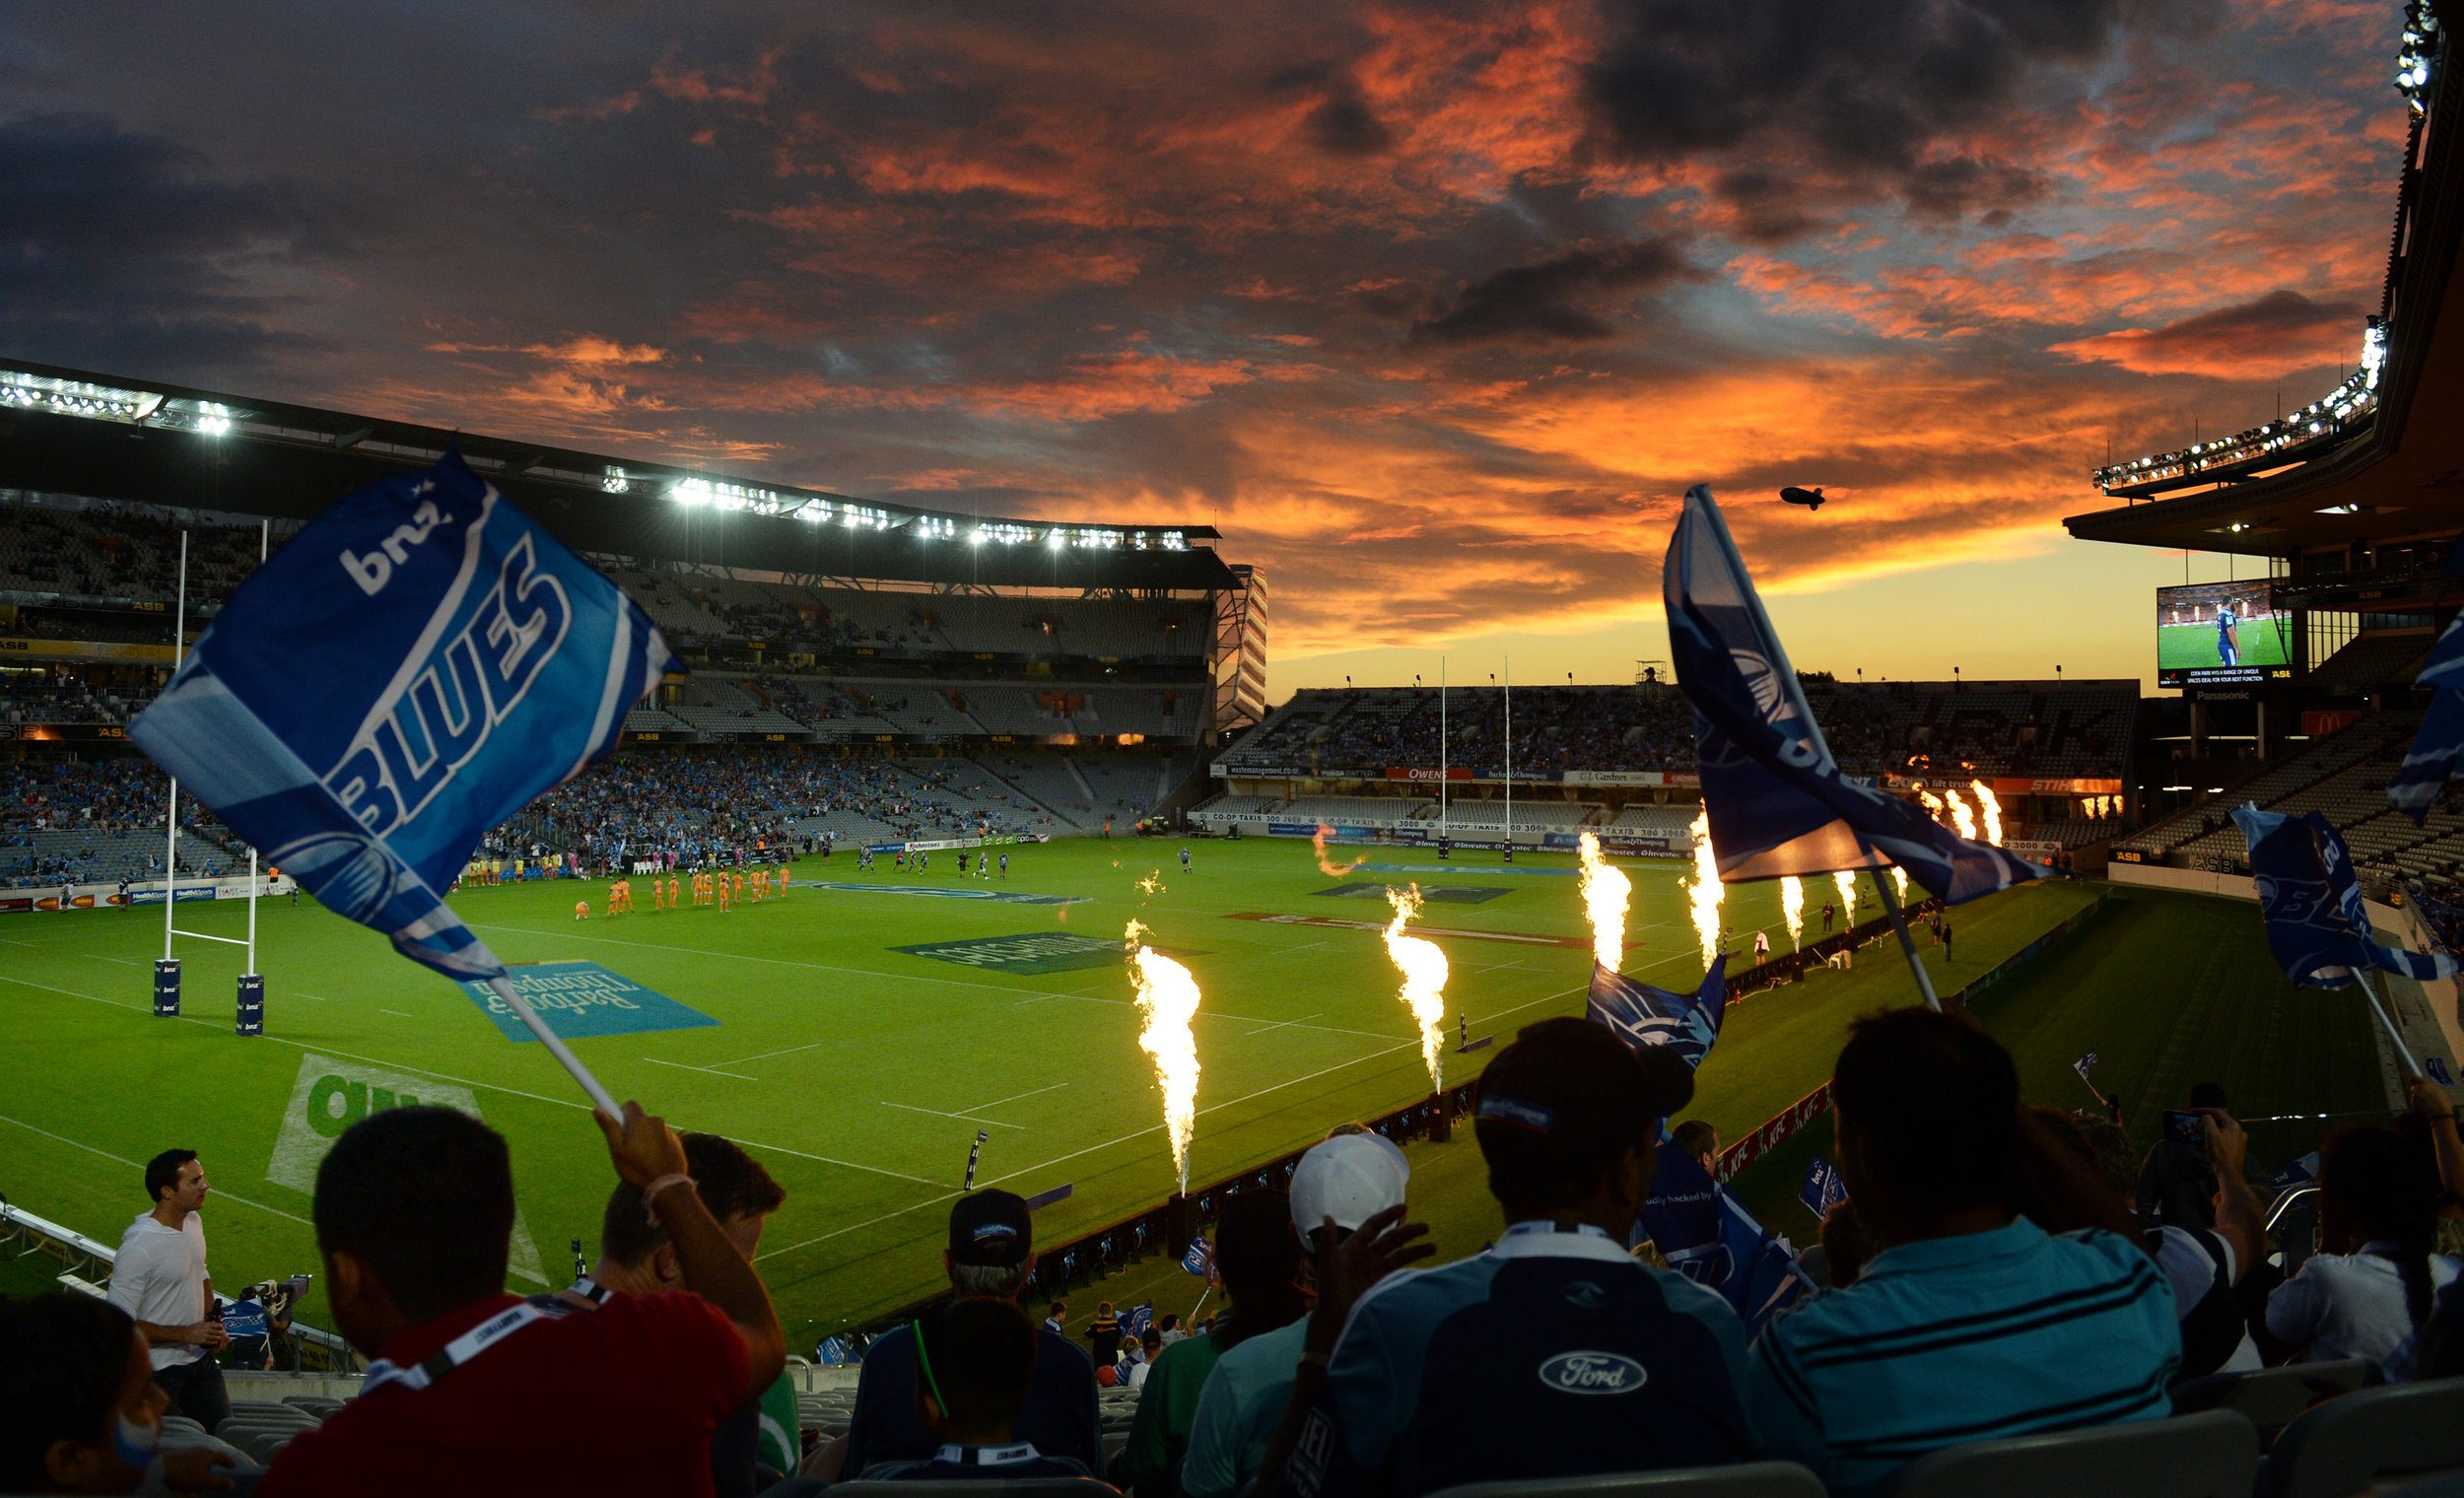 Auckland - Eden Park   Auckland will host three matches in total during the 2017 Lions Tour of New Zealand including two out of the three Test matches. Eden Park is the country's biggest stadium and so it makes sense to hold the Test matches there in order to allow as many people as possible to watch the spectacle of a Lions Test match. The first game at Eden Park will be the second warm up game of the tour and the Lions will take on the Auckland Blues. Historically the provincial teams have struggled to beat the Lions in the warm up matches but with a raising of the standard in the Super Rugby competition, these games are expected to provide a real test for the Lions this time around.